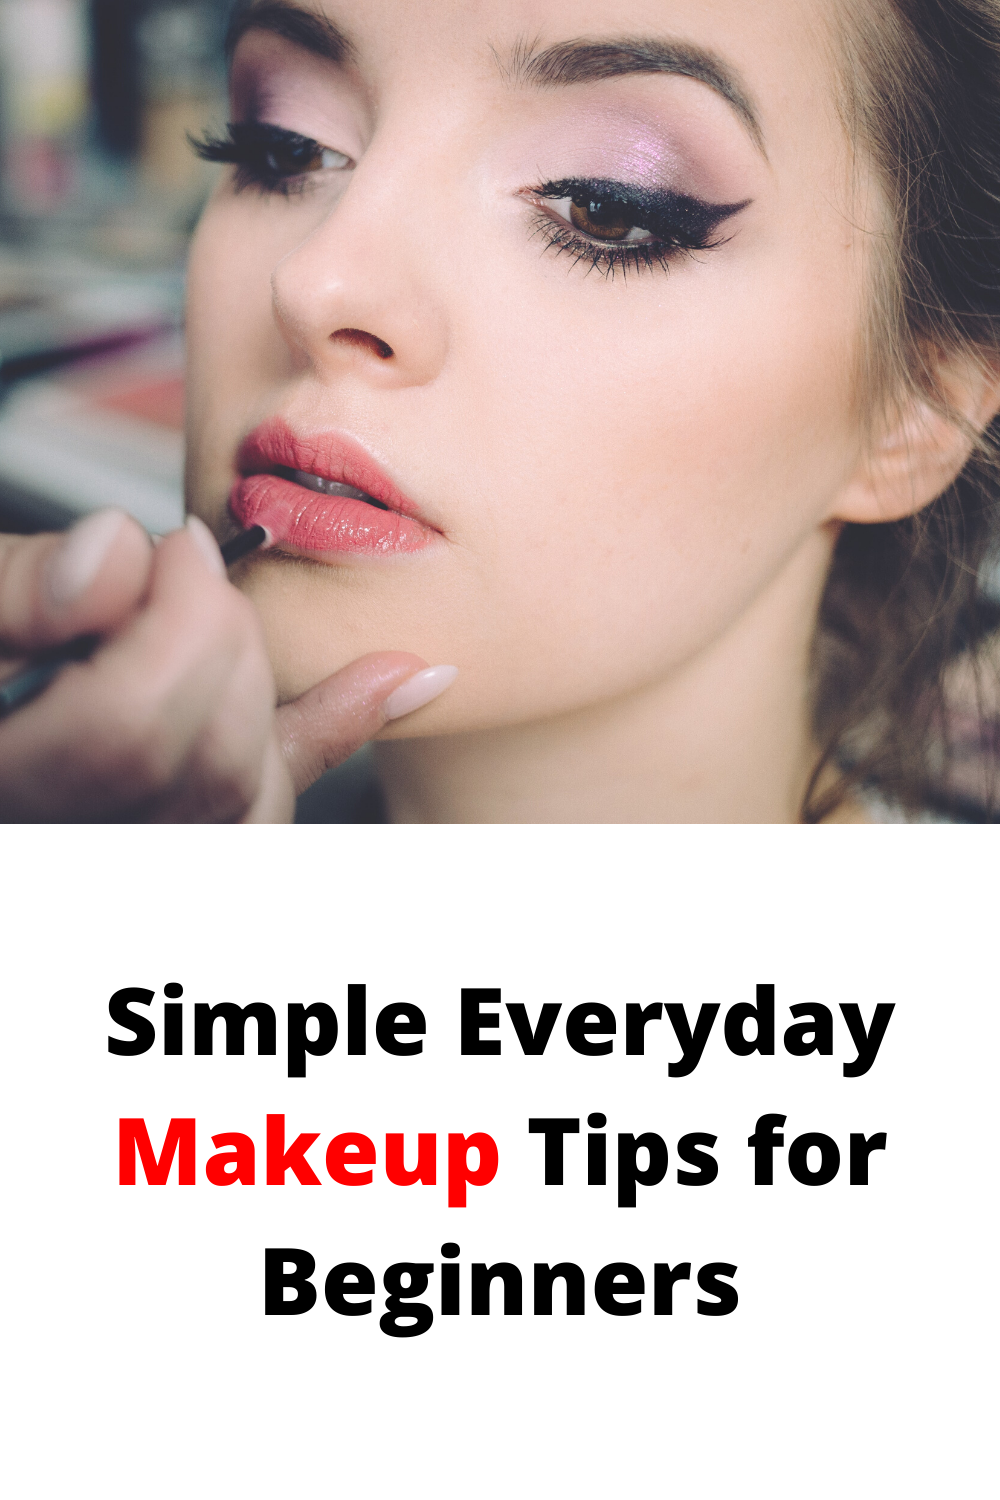 Simple Everyday Makeup Tips for Beginners in 2020 Simple